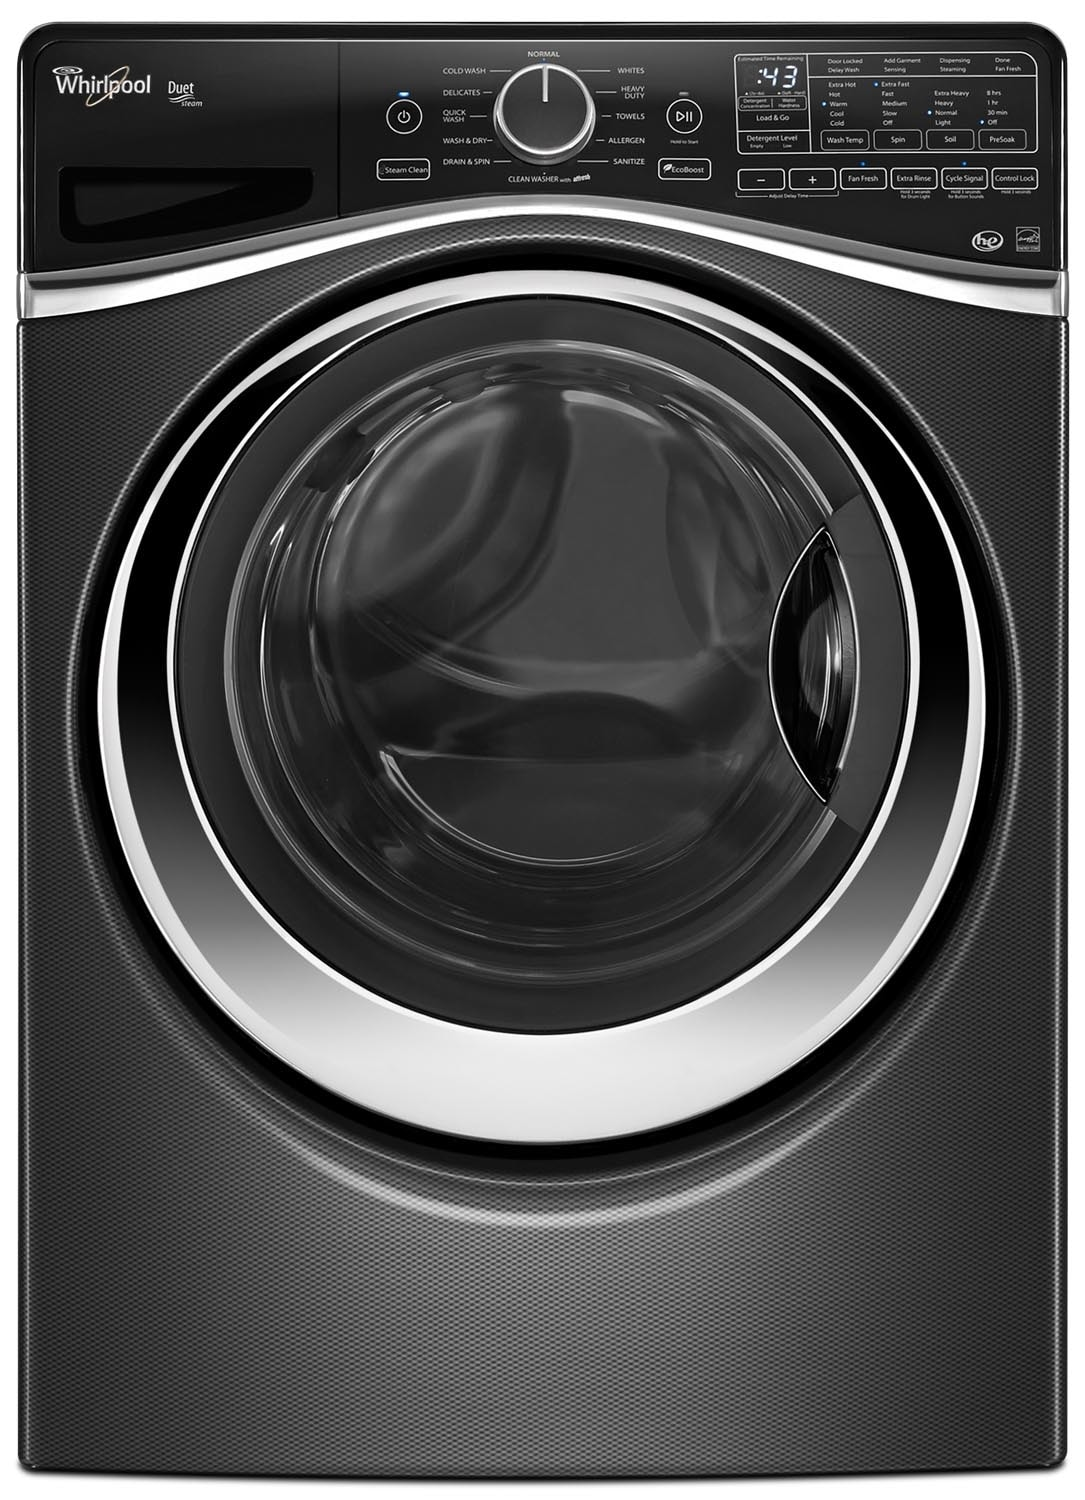 Washers and Dryers - Whirlpool Black Diamond Front-Load Washer (5.2 Cu. Ft. IEC) - WFW97HEDBD